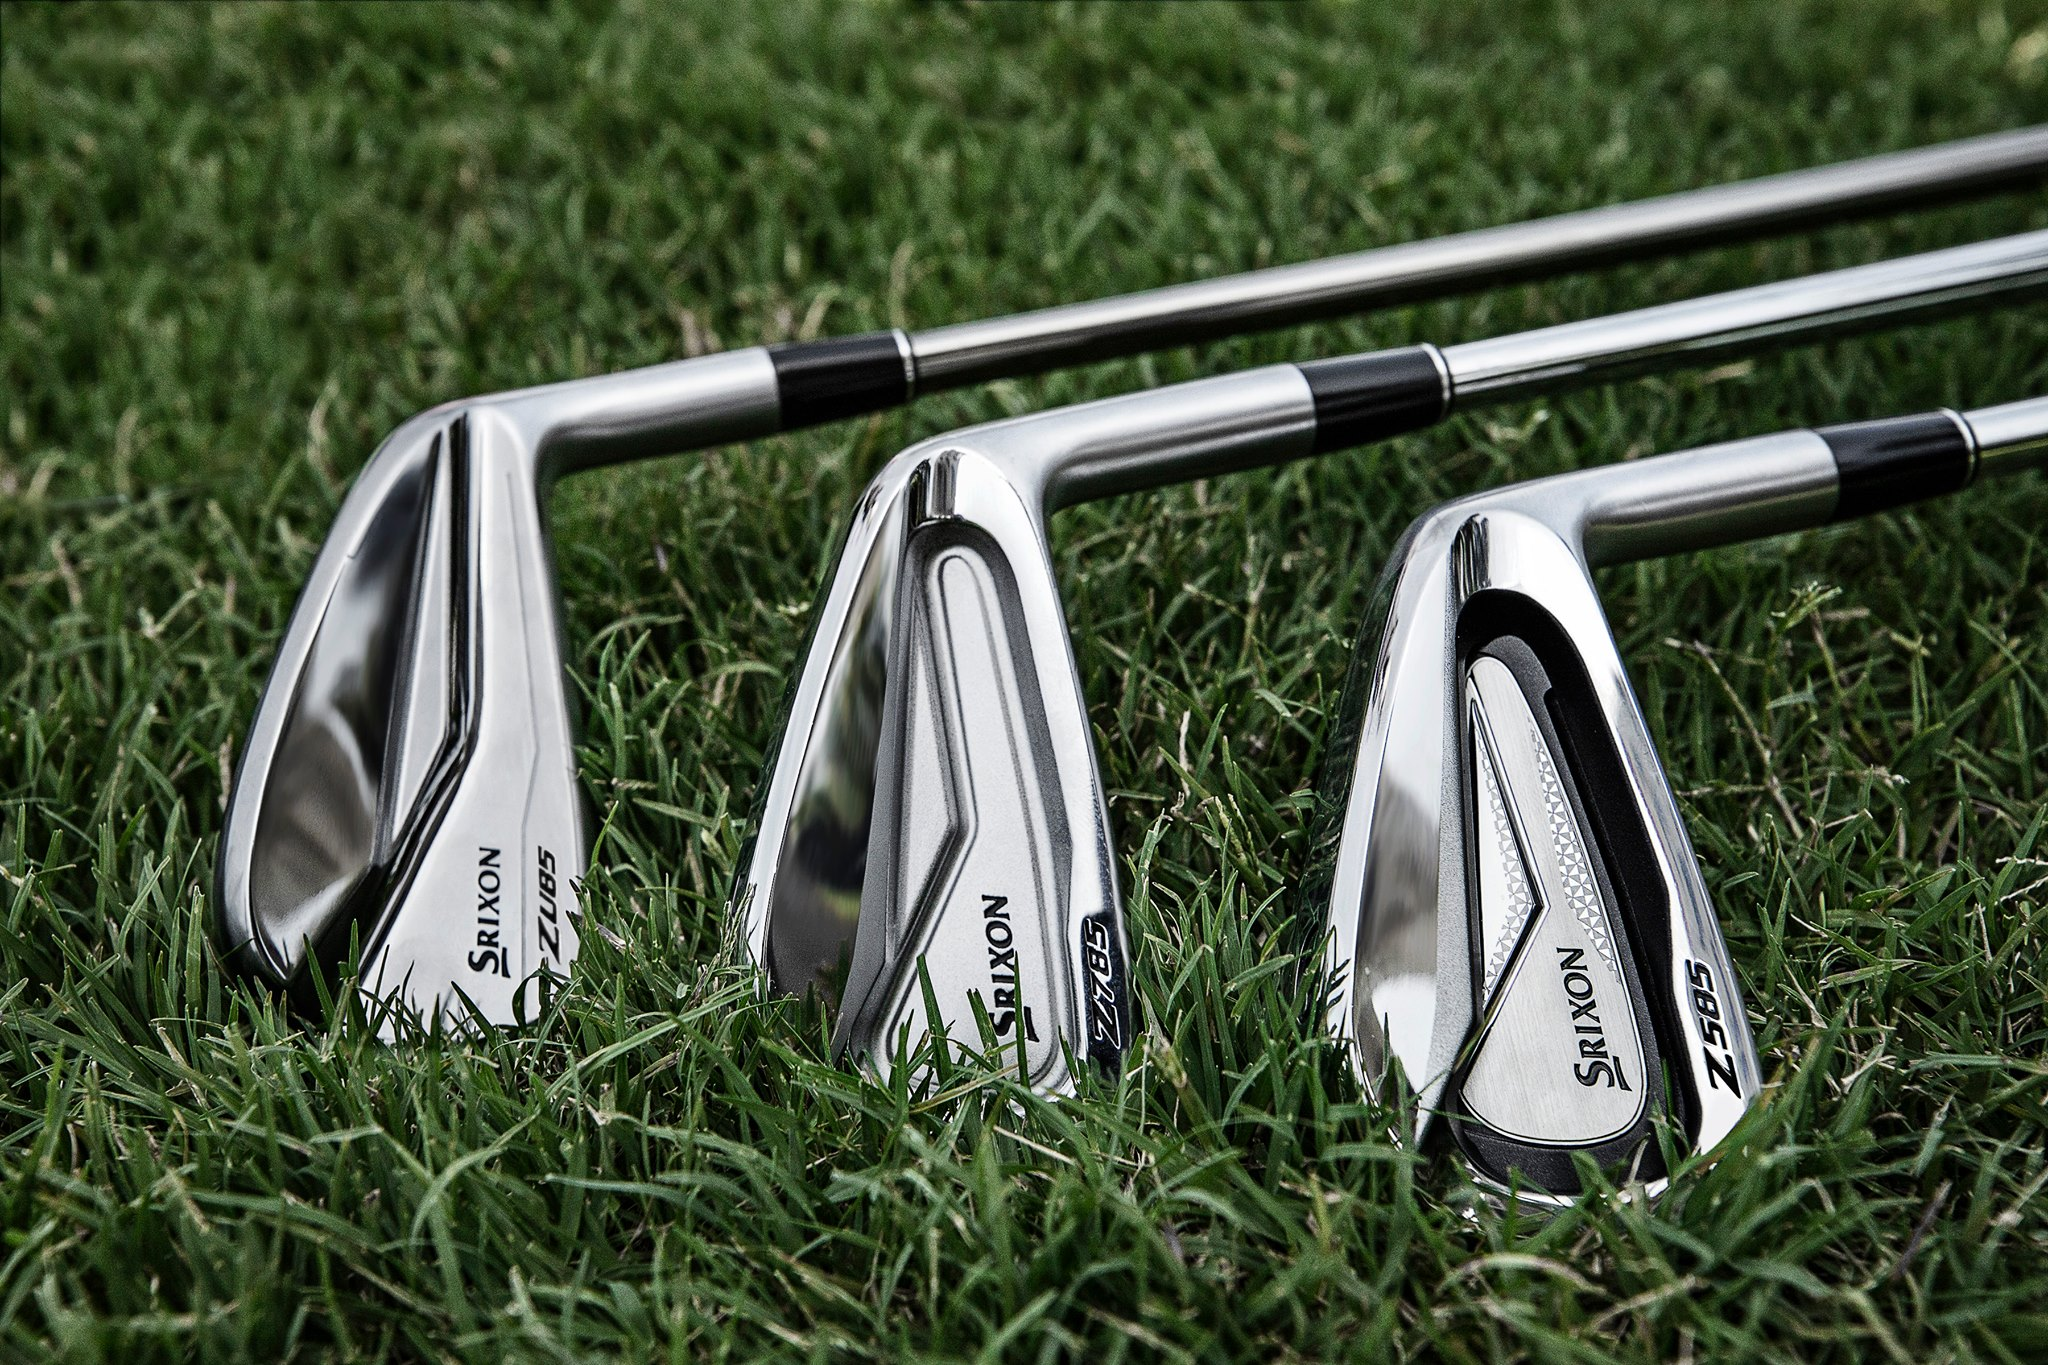 Srixon Golf Demo Day at Hanover Golf Club - May